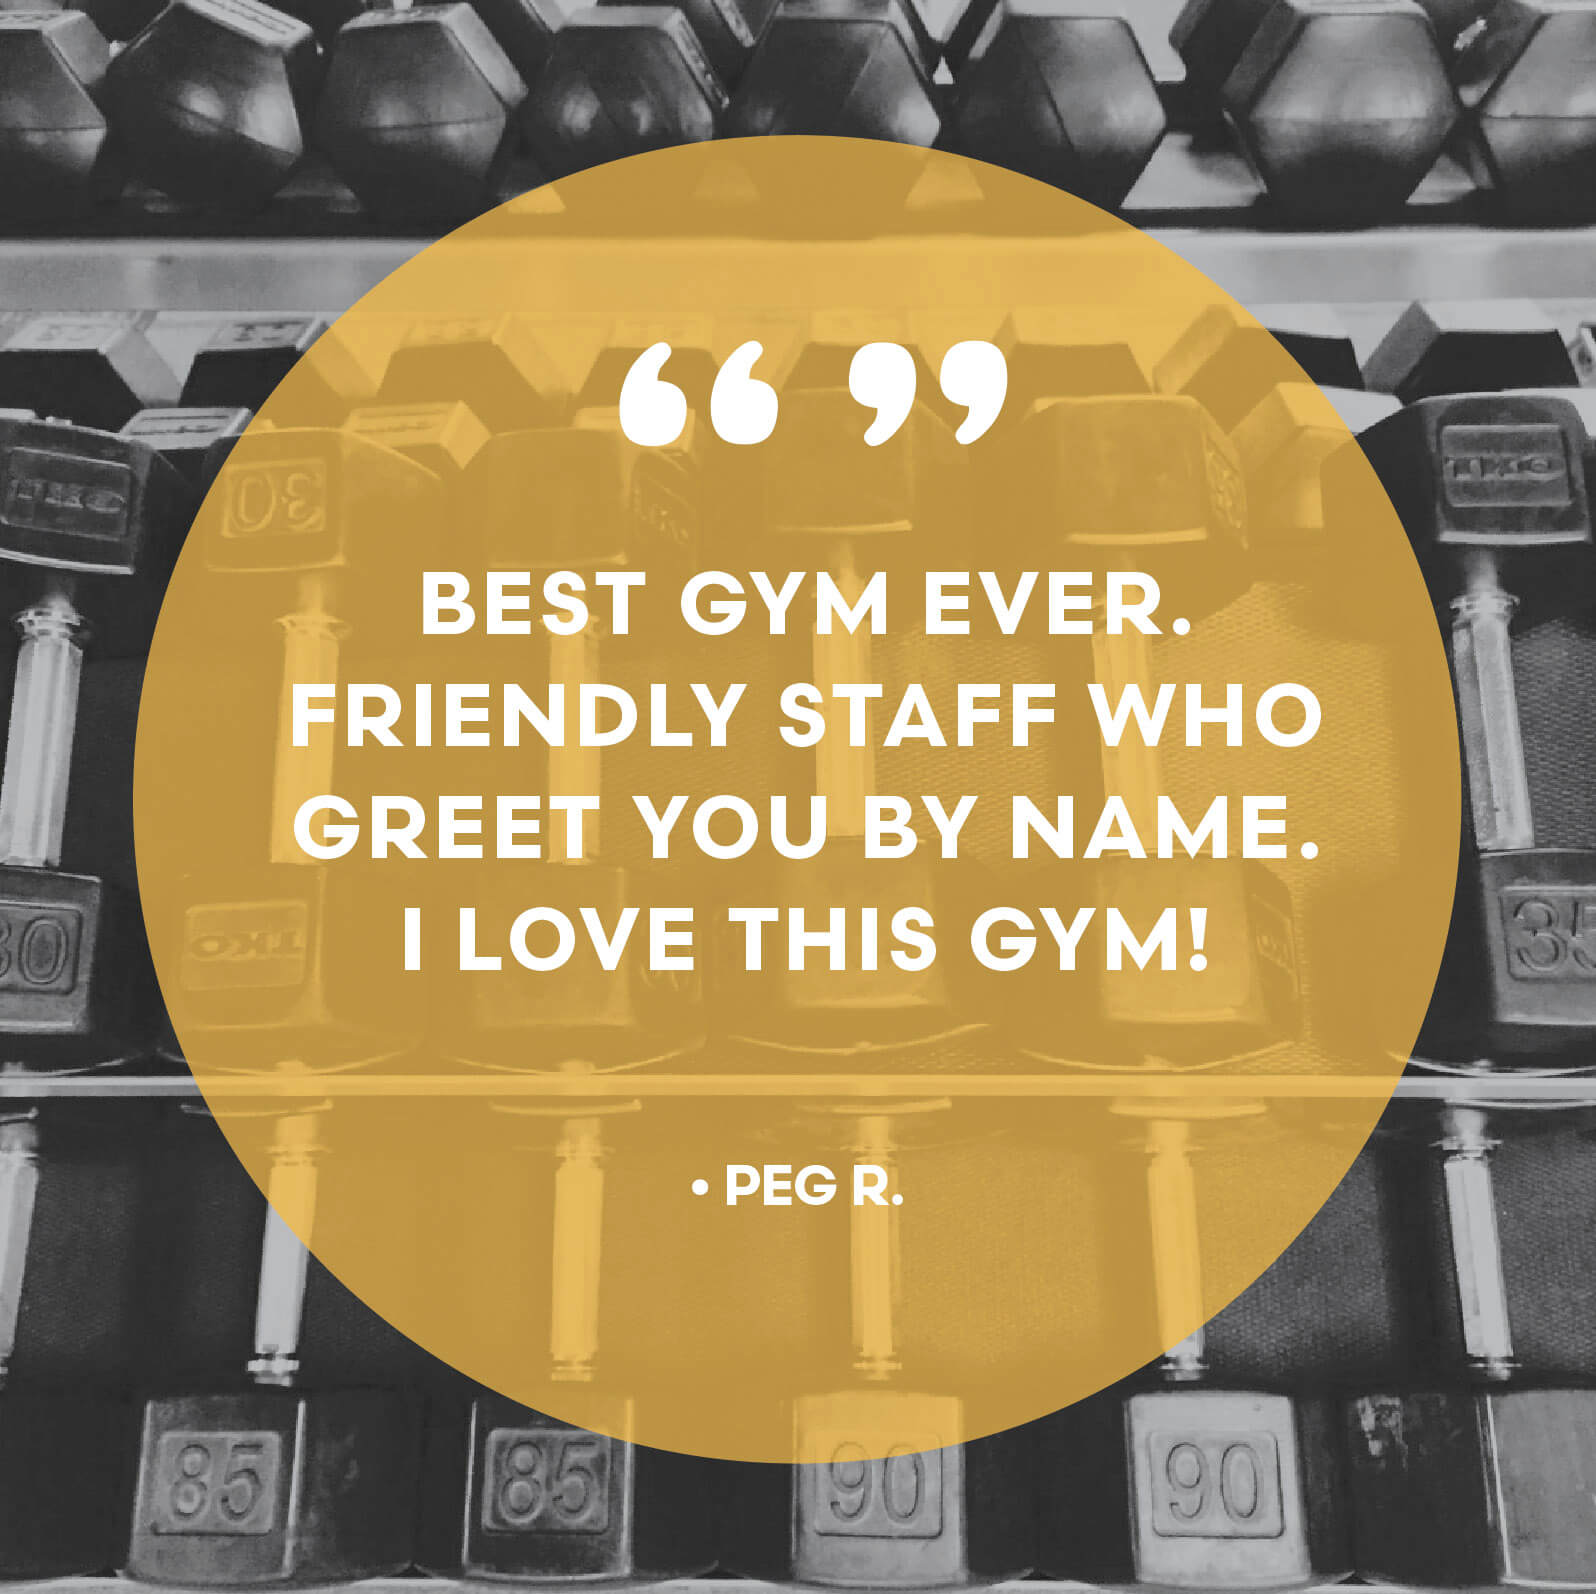 Best gym ever. Friendly staff who greet you by name. I love this gym!